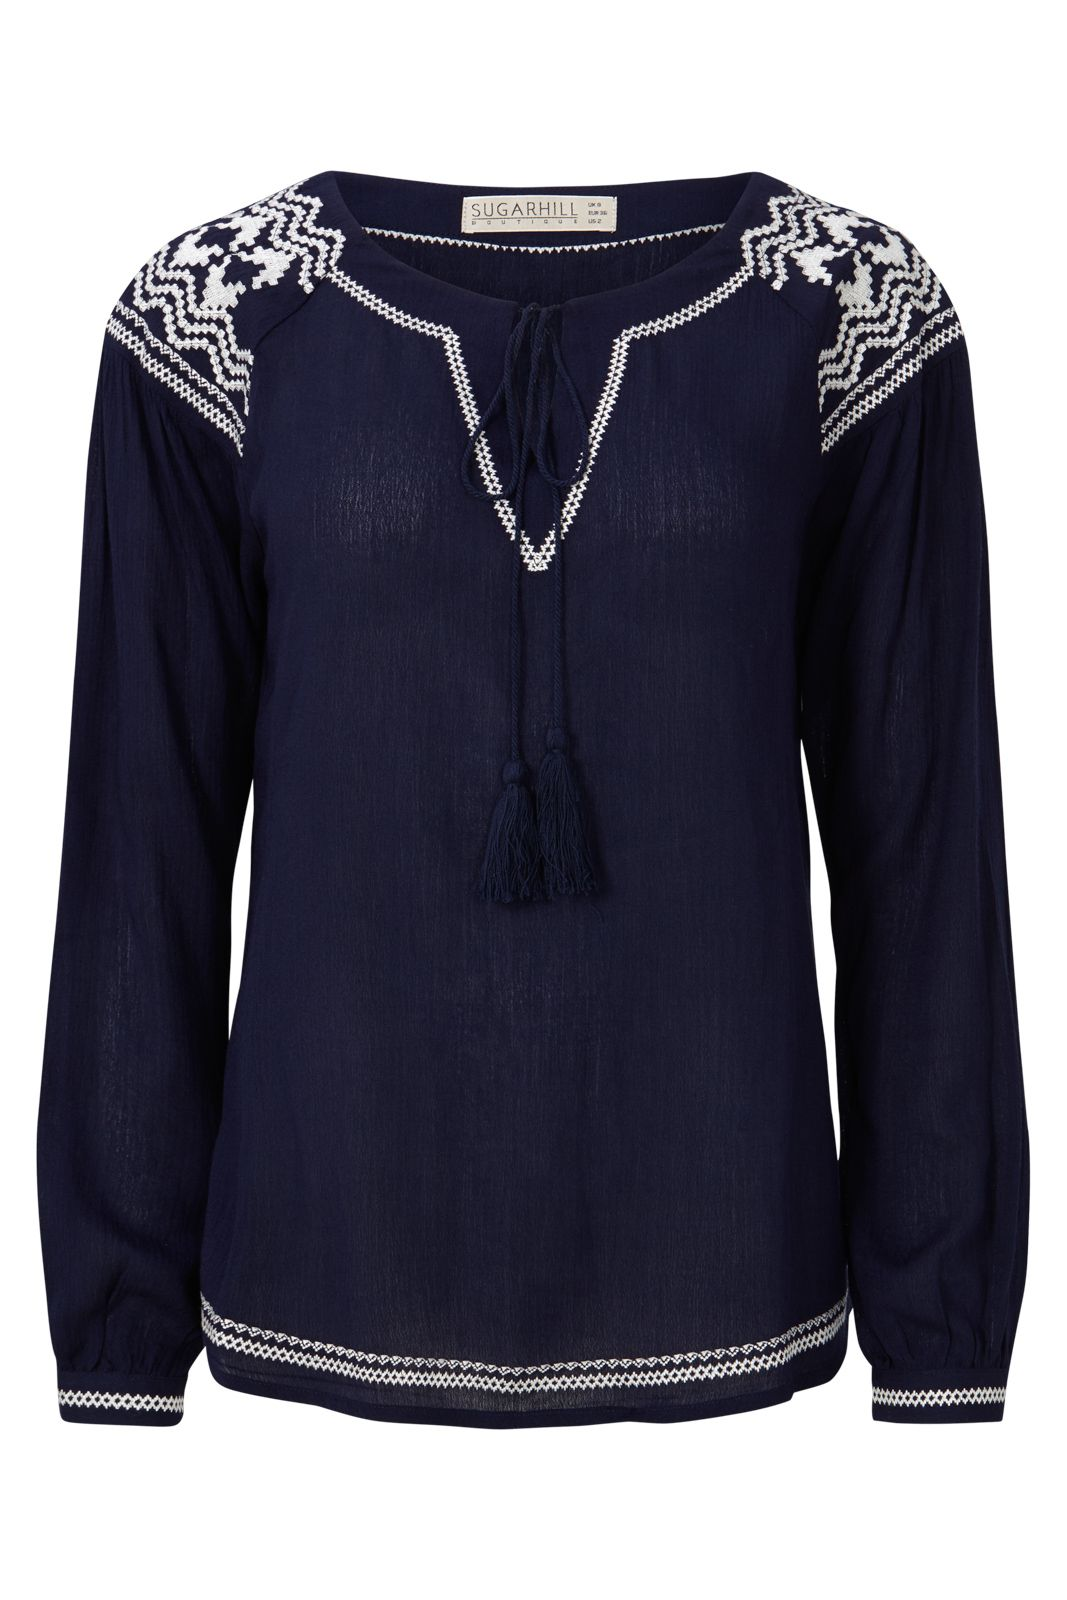 Sugarhill Boutique Windmill Embroidered Boho Top, Blue